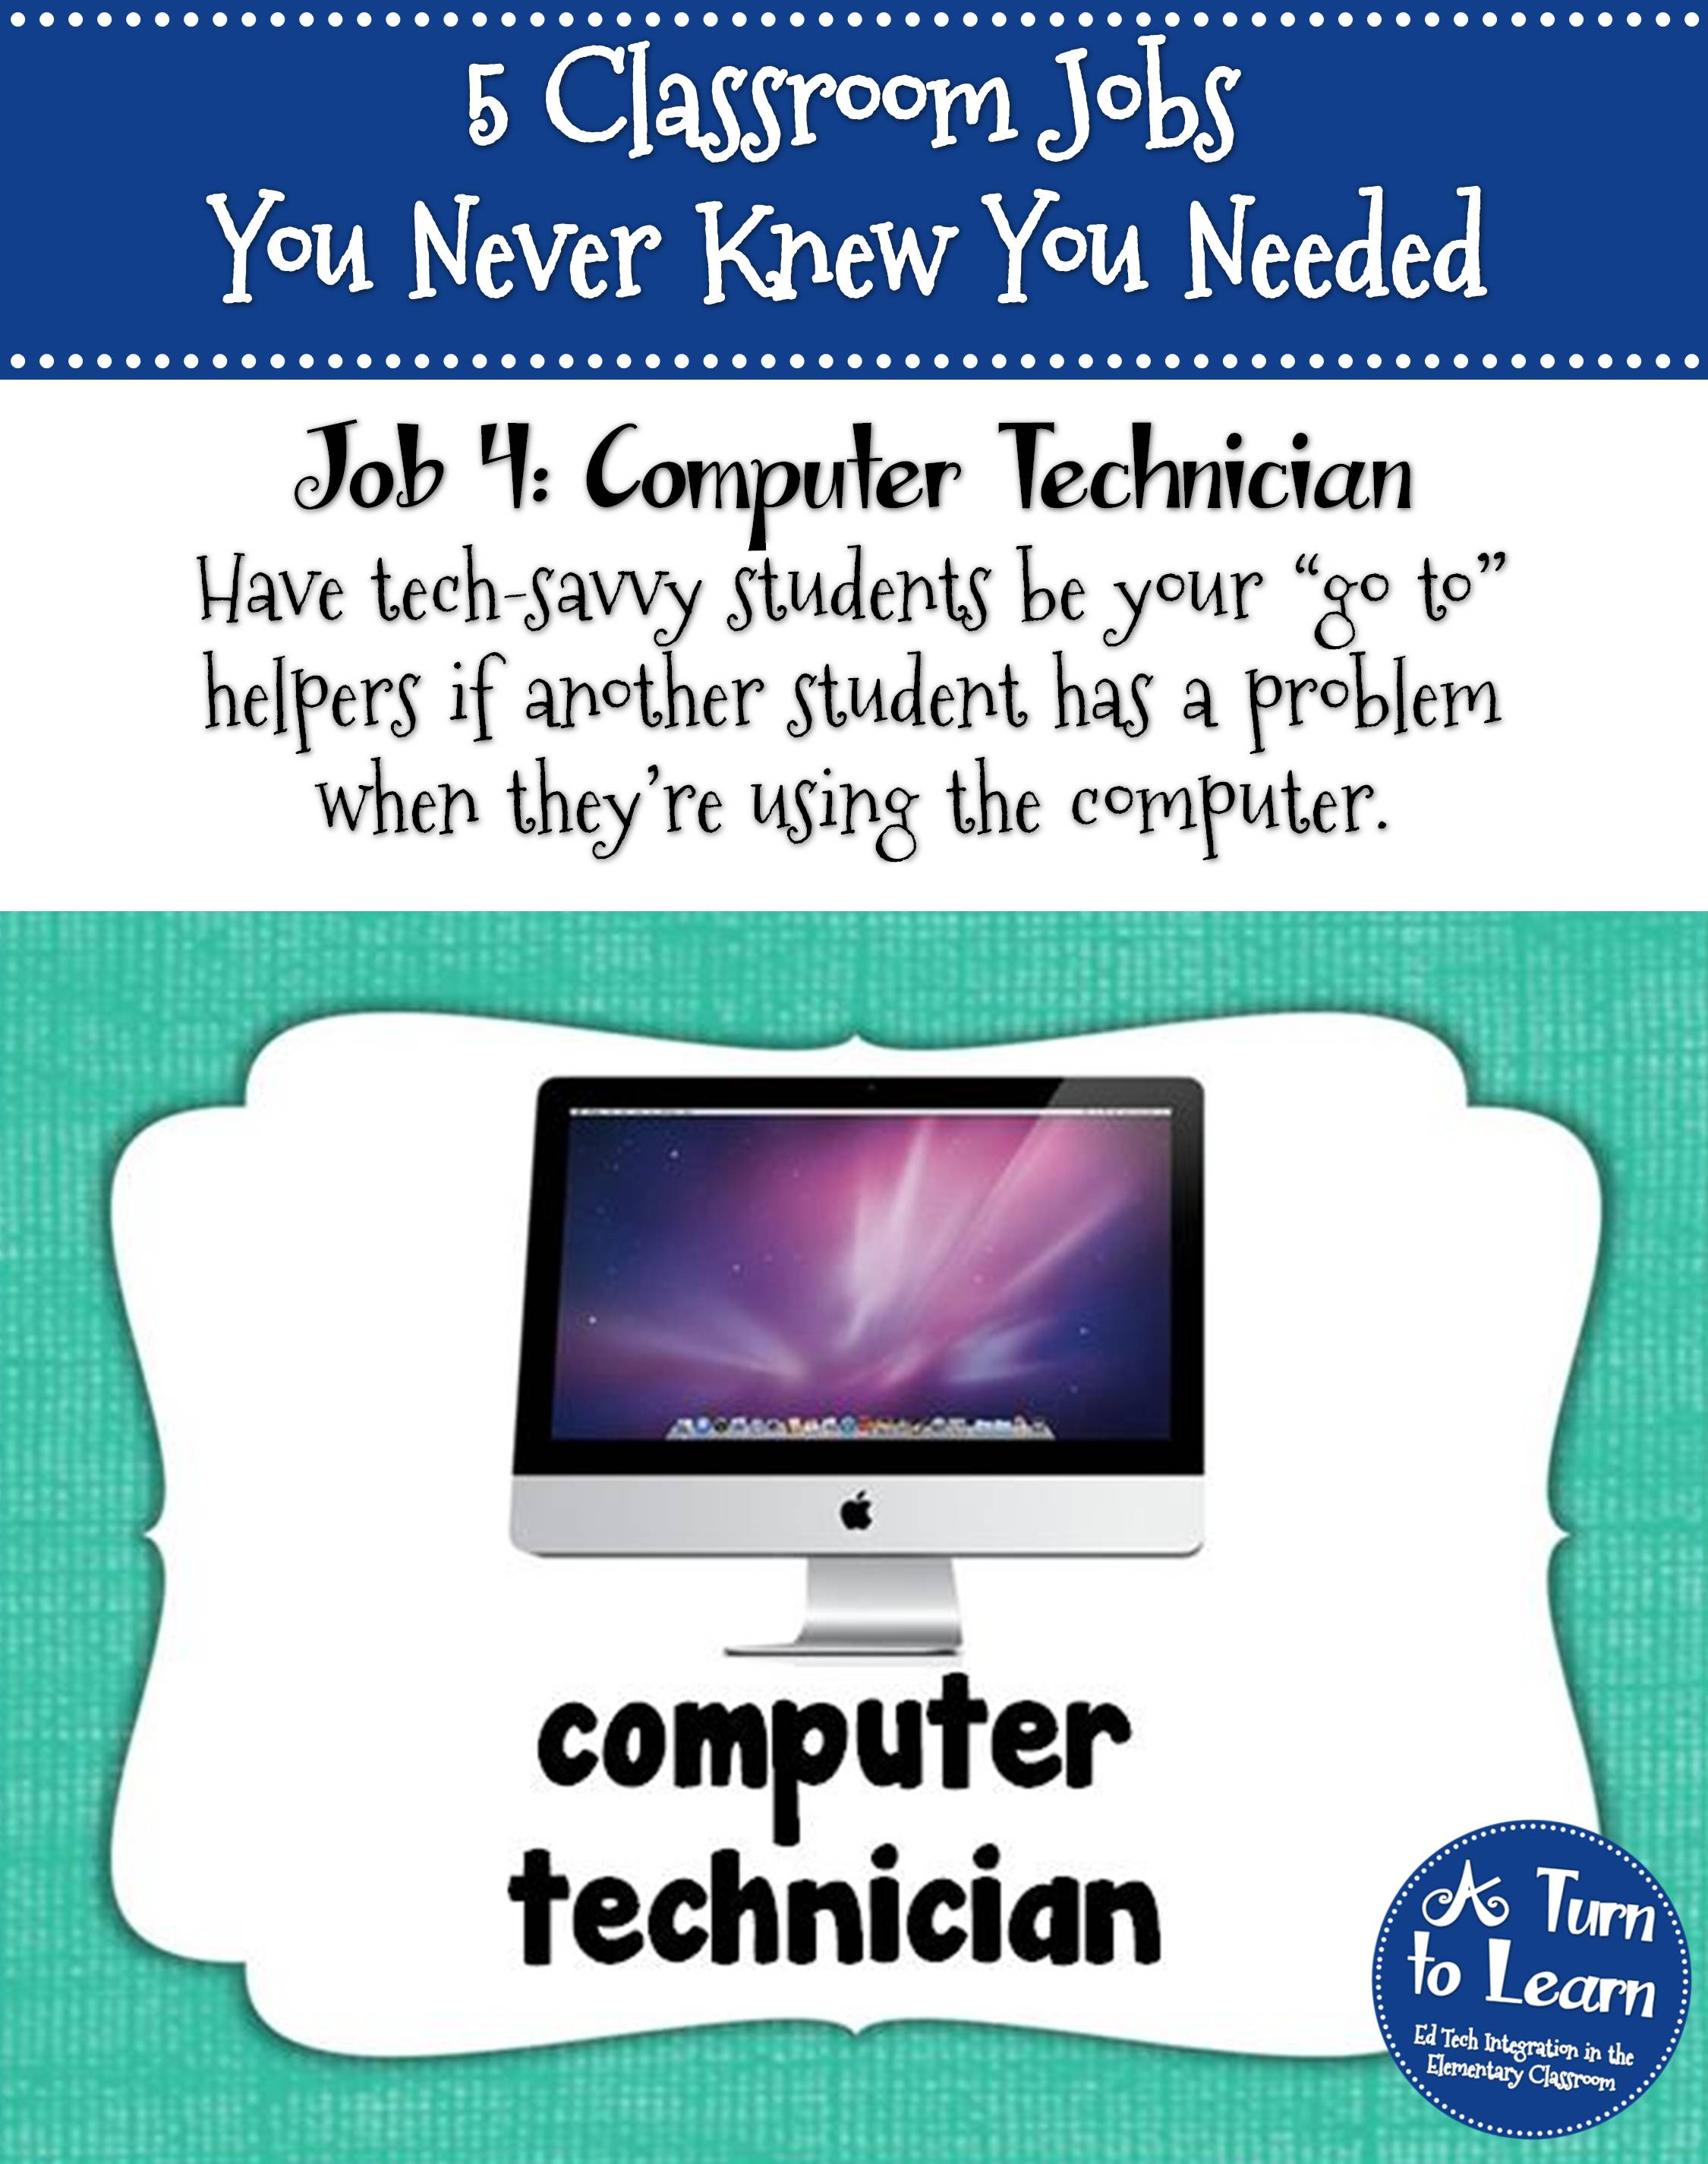 5 classroom jobs you never knew you needed... some awesome ideas for elementary classroom jobs!